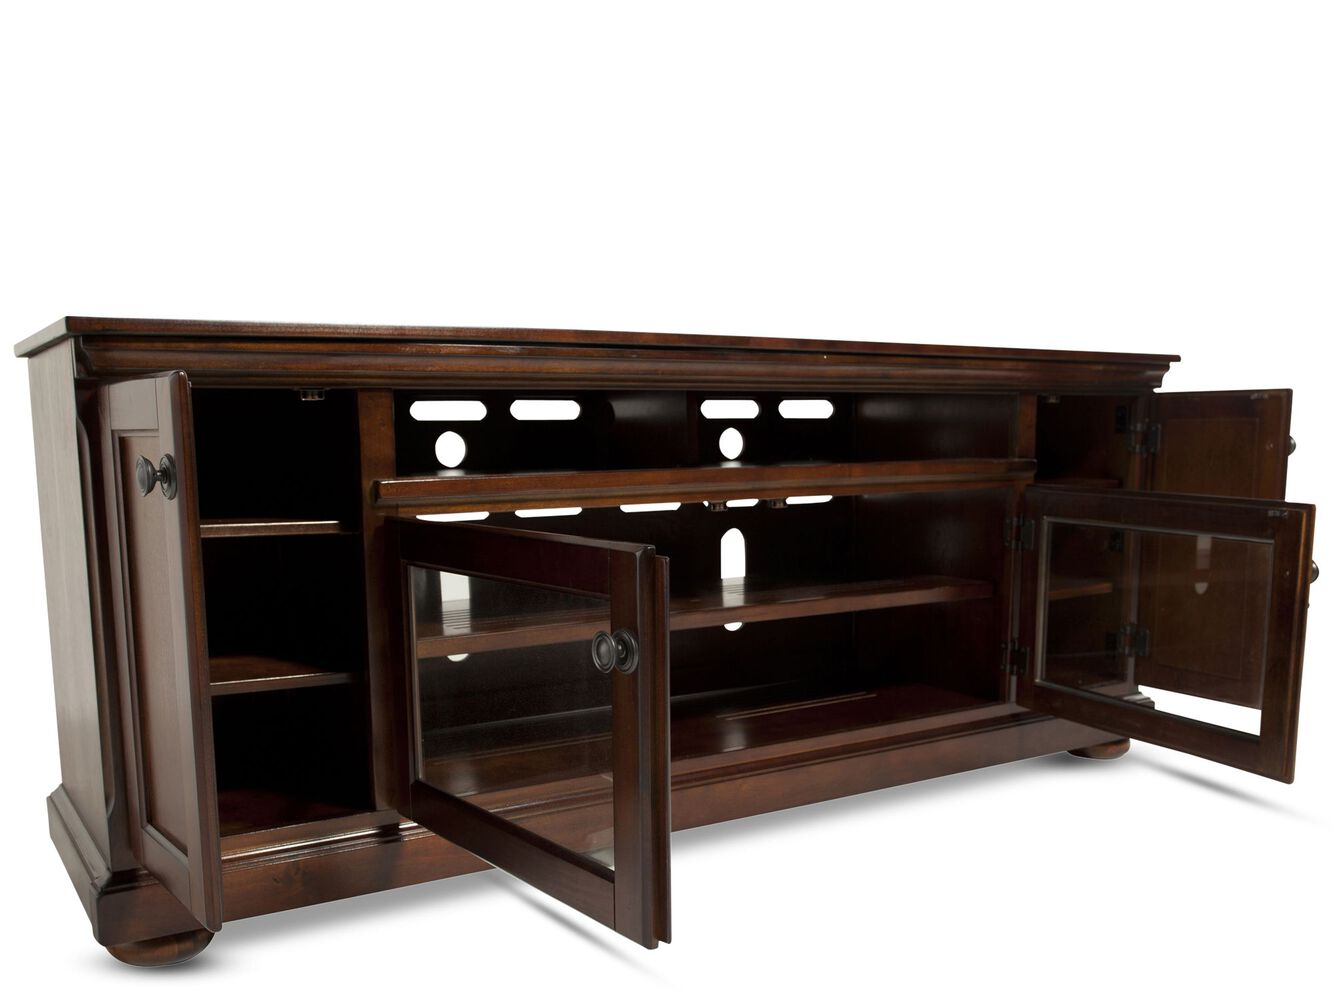 Porter Large Entertainment Wall Unit likewise Millennium By Ashley Furniture Bedroom Group B697 besides 44240 furthermore Ashley Porter Sofa Table furthermore Ashley Furniture Porter 115 Entertainment Center In Rustic Brown W697 132 33 34 35 KIT. on ashley furniture porter entertainment center